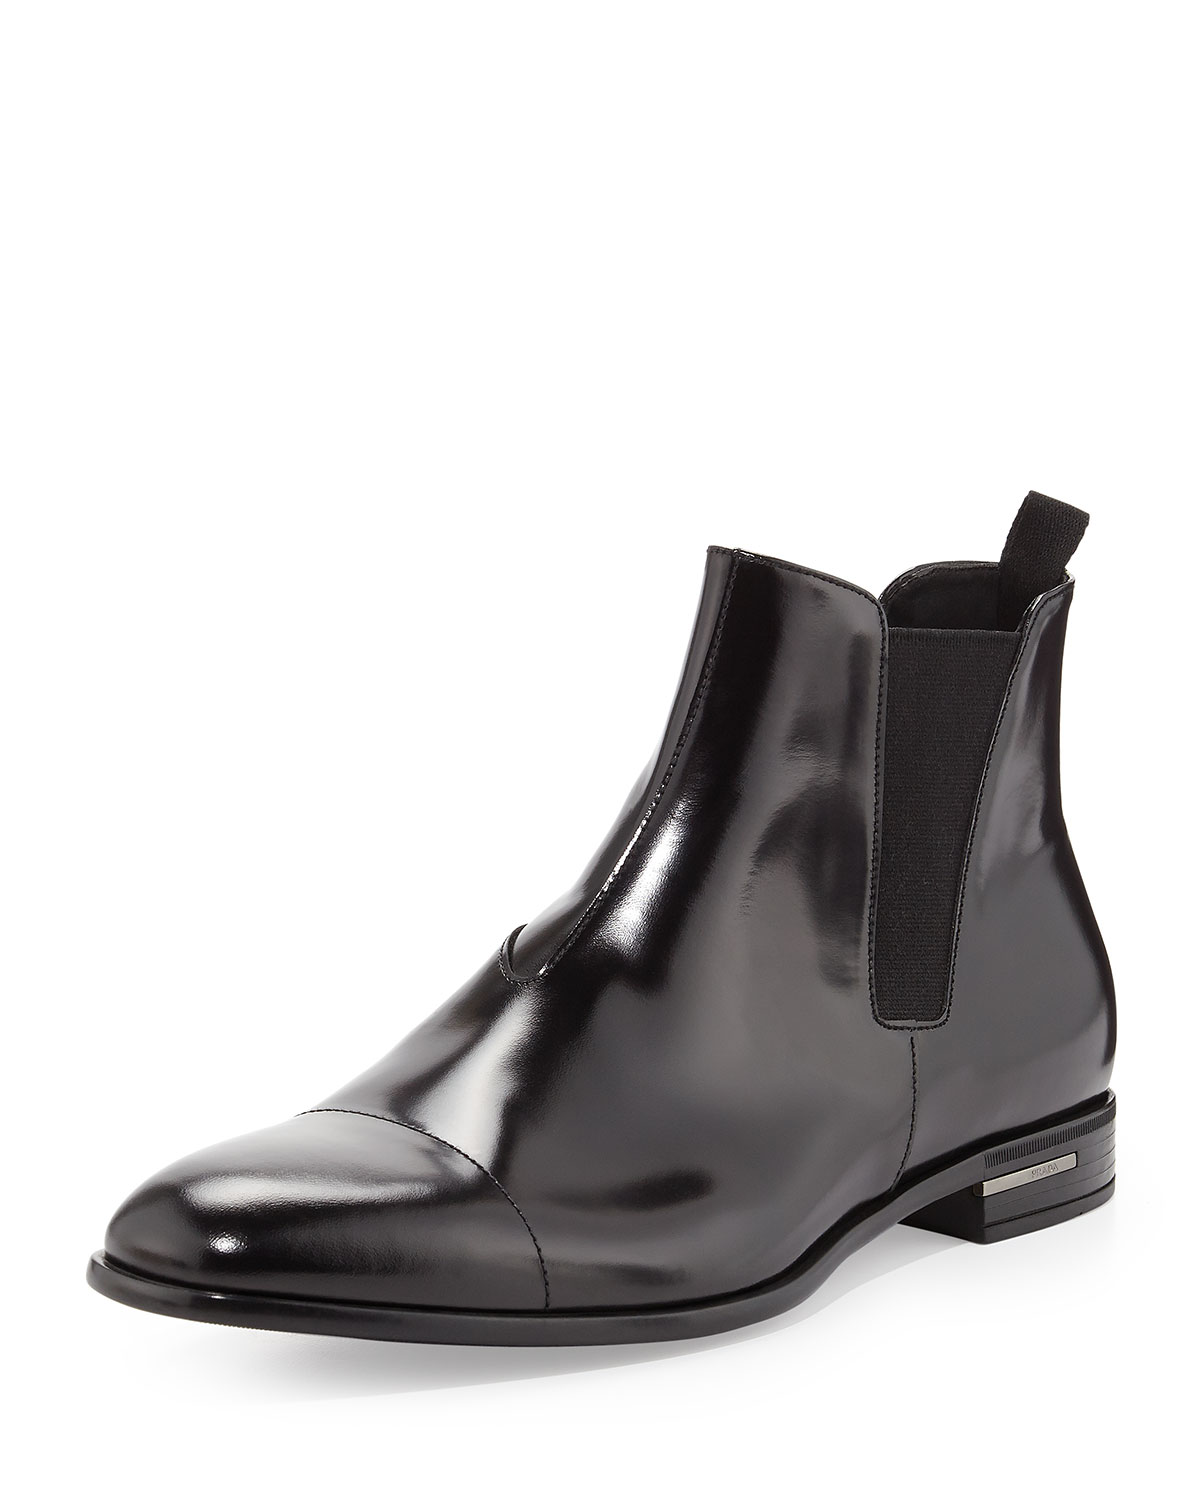 Prada Spazzolato Chelsea Dress Boot